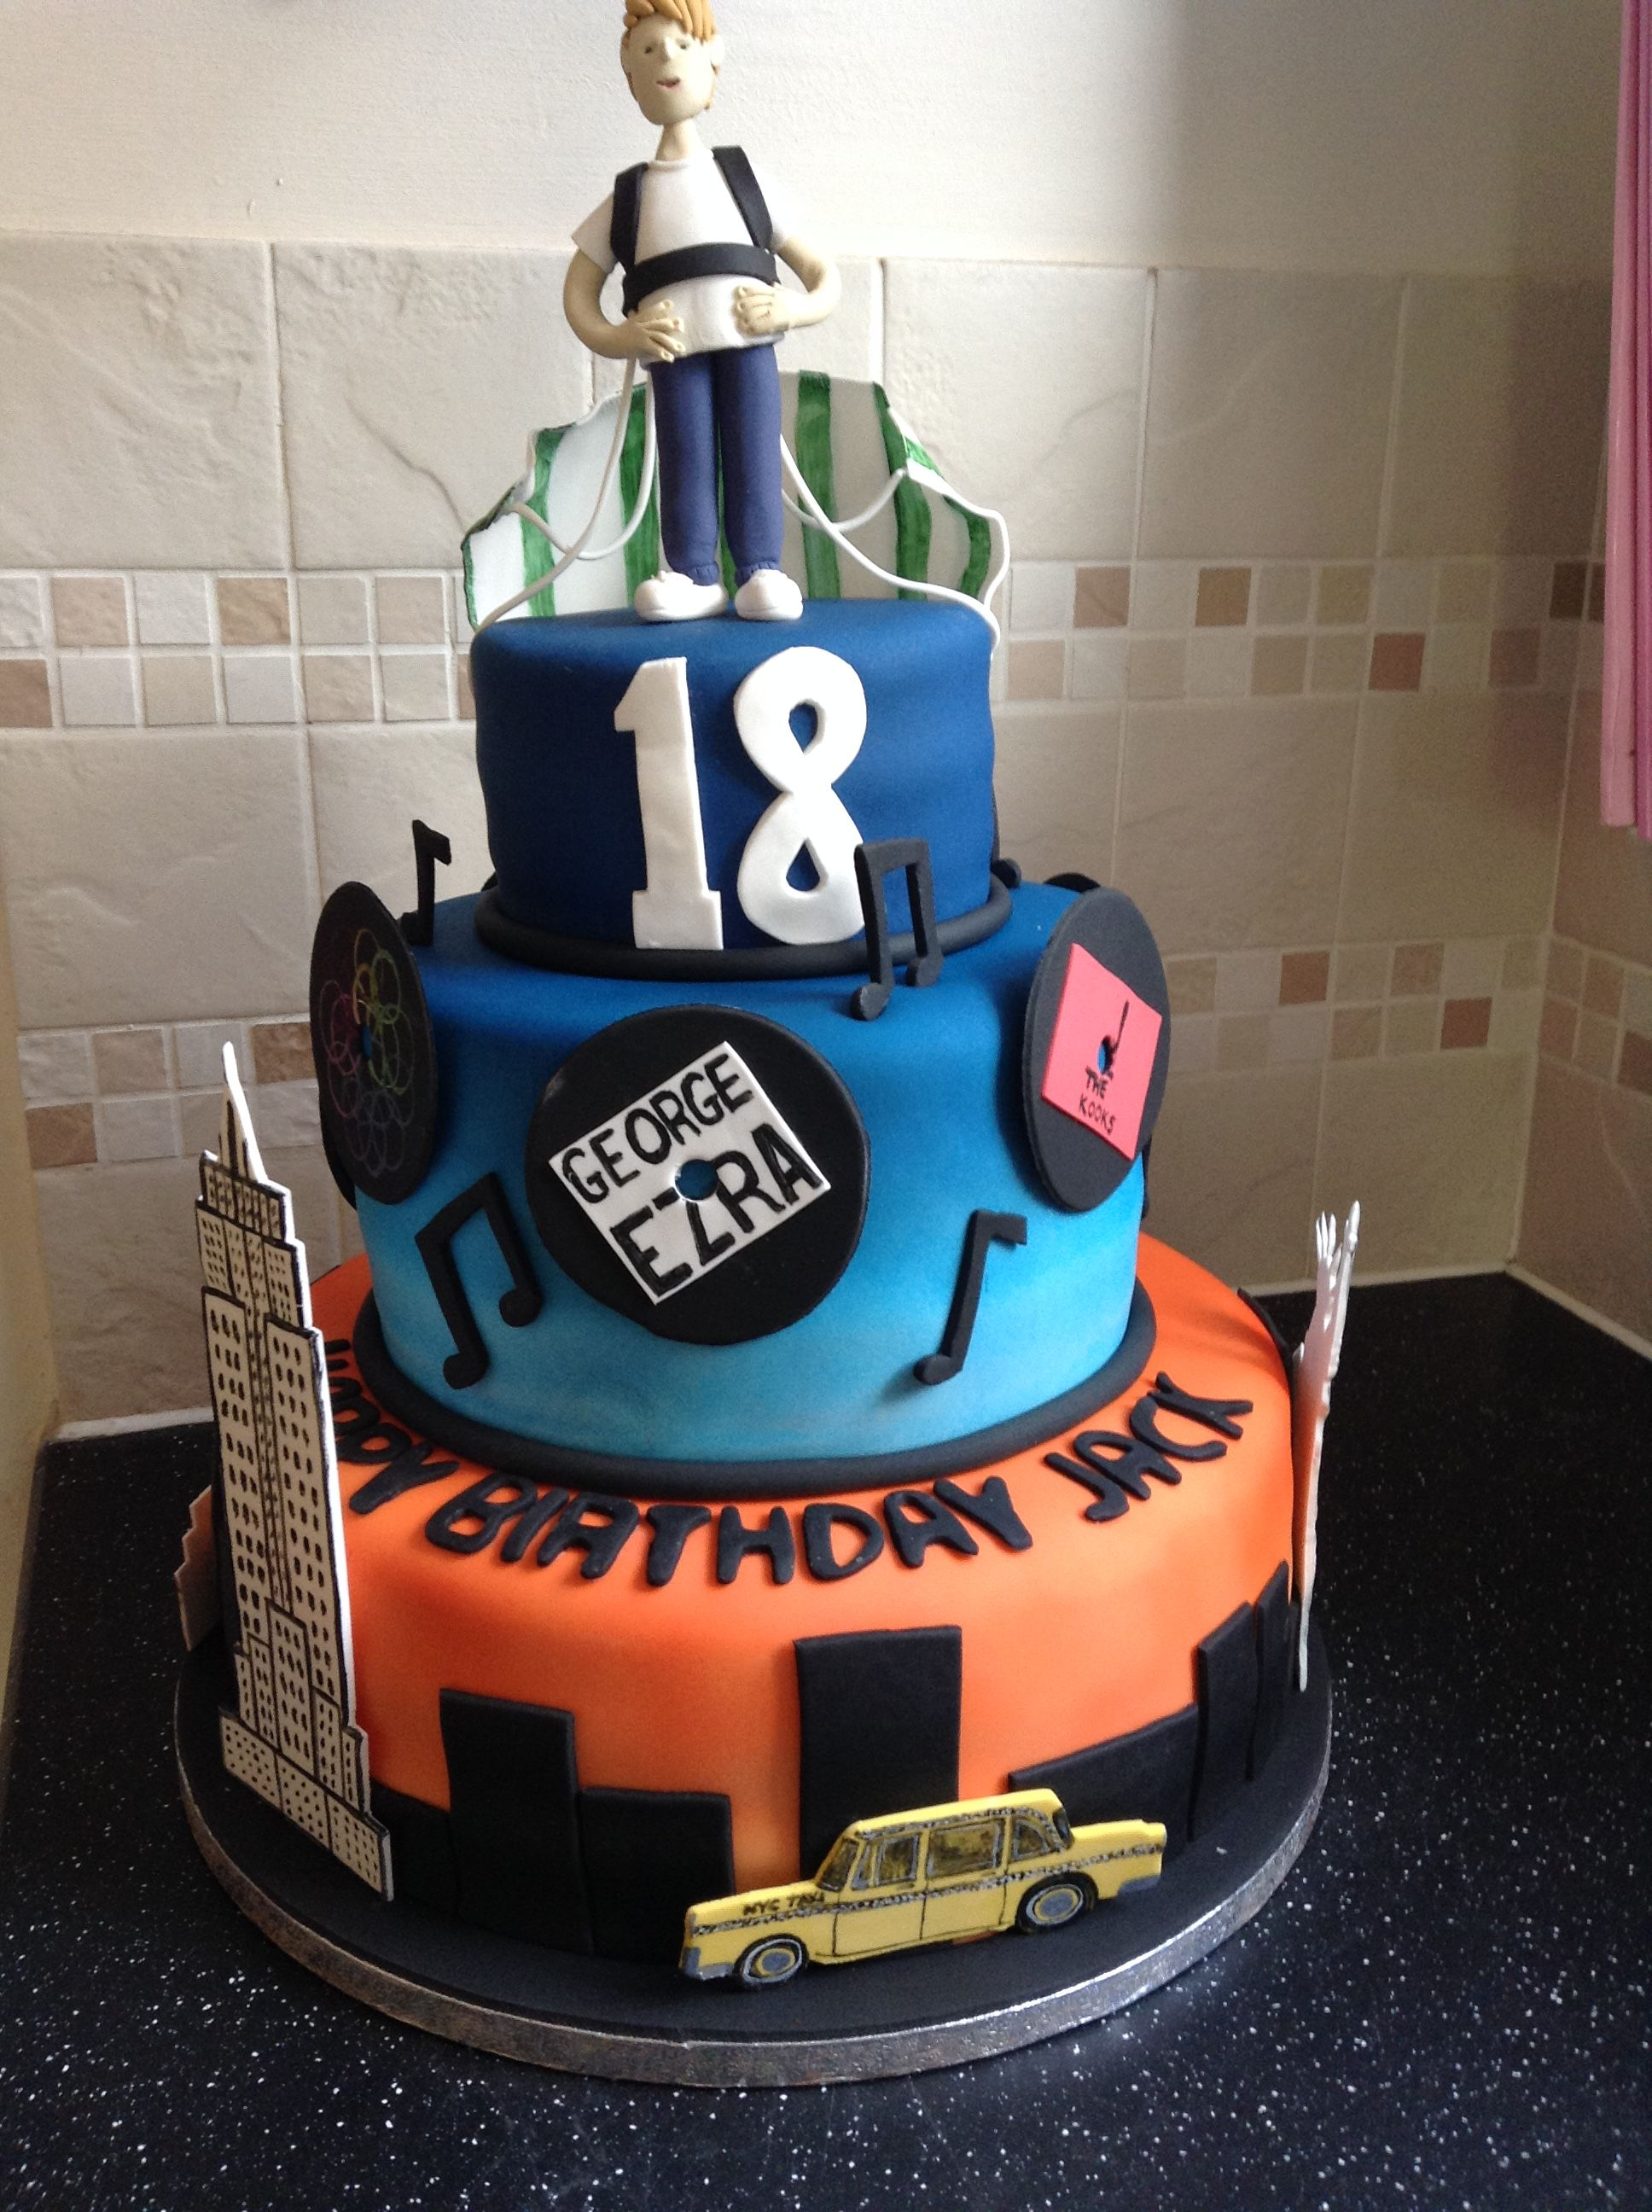 personalised birthday cakes images